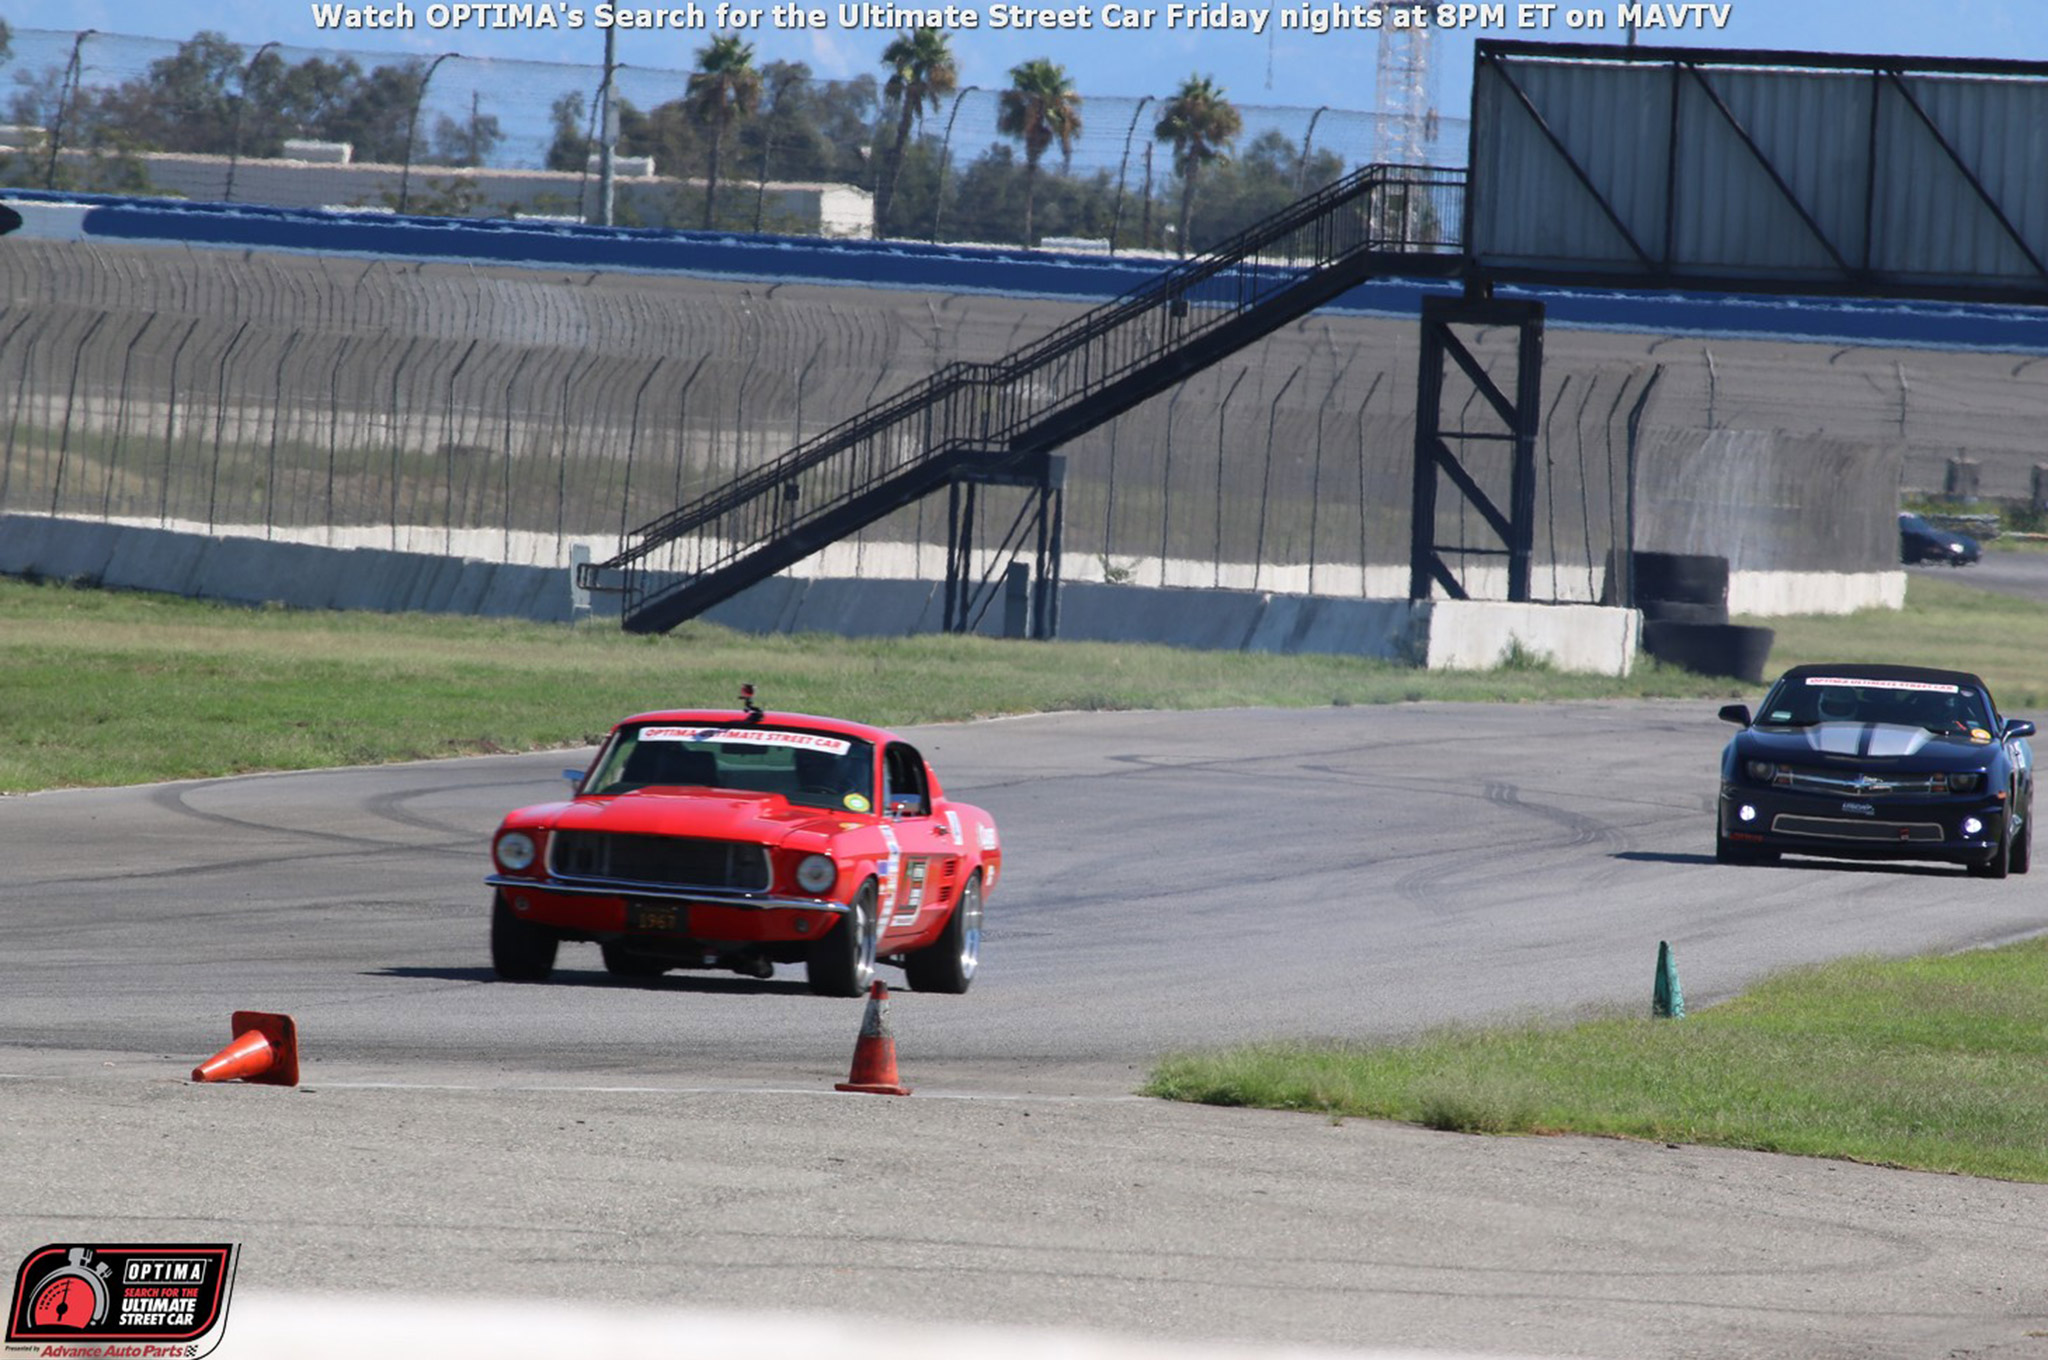 John Anthony came in a little hot on this pass in the Wilwood Speed Stop Challenge. He ended up placing 25th in the GTV class for this event in his rookie outing.